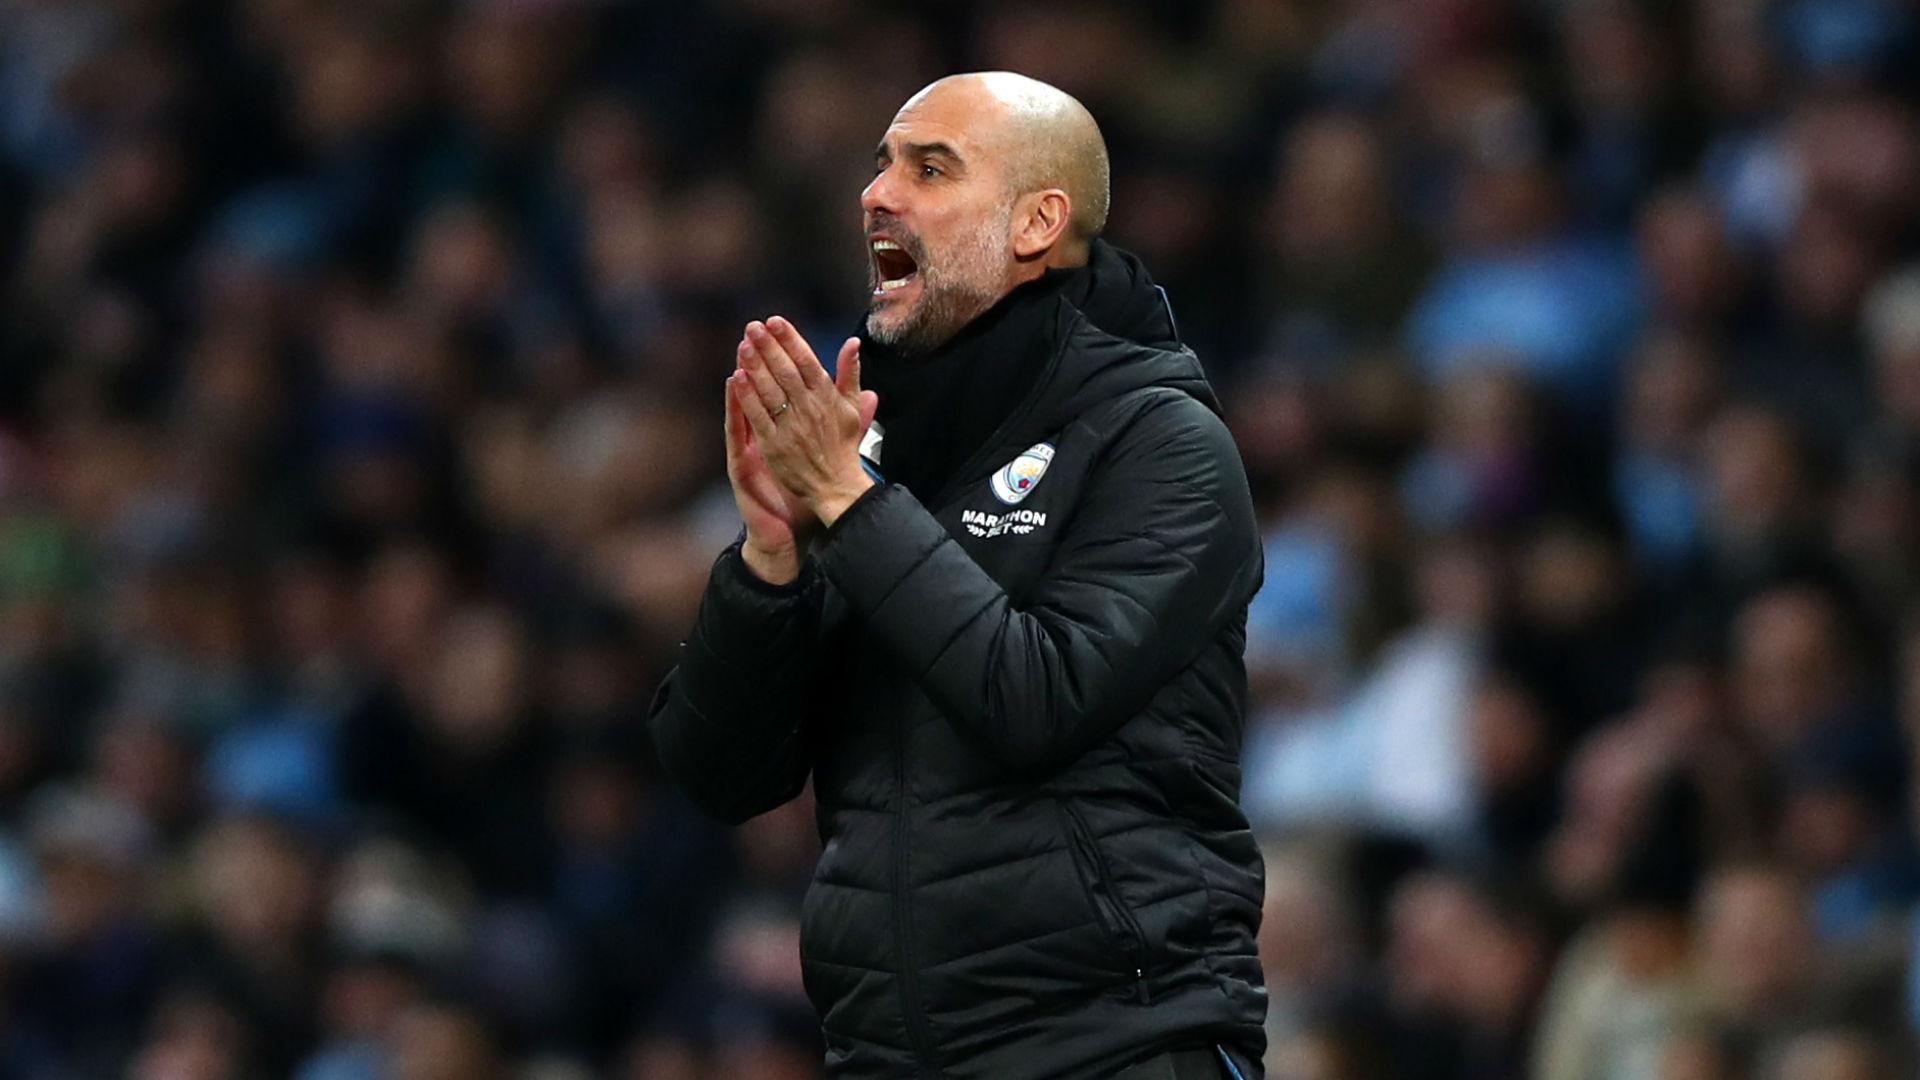 Guardiola claims City 'won't be in Europe' if they prioritise cup competitions